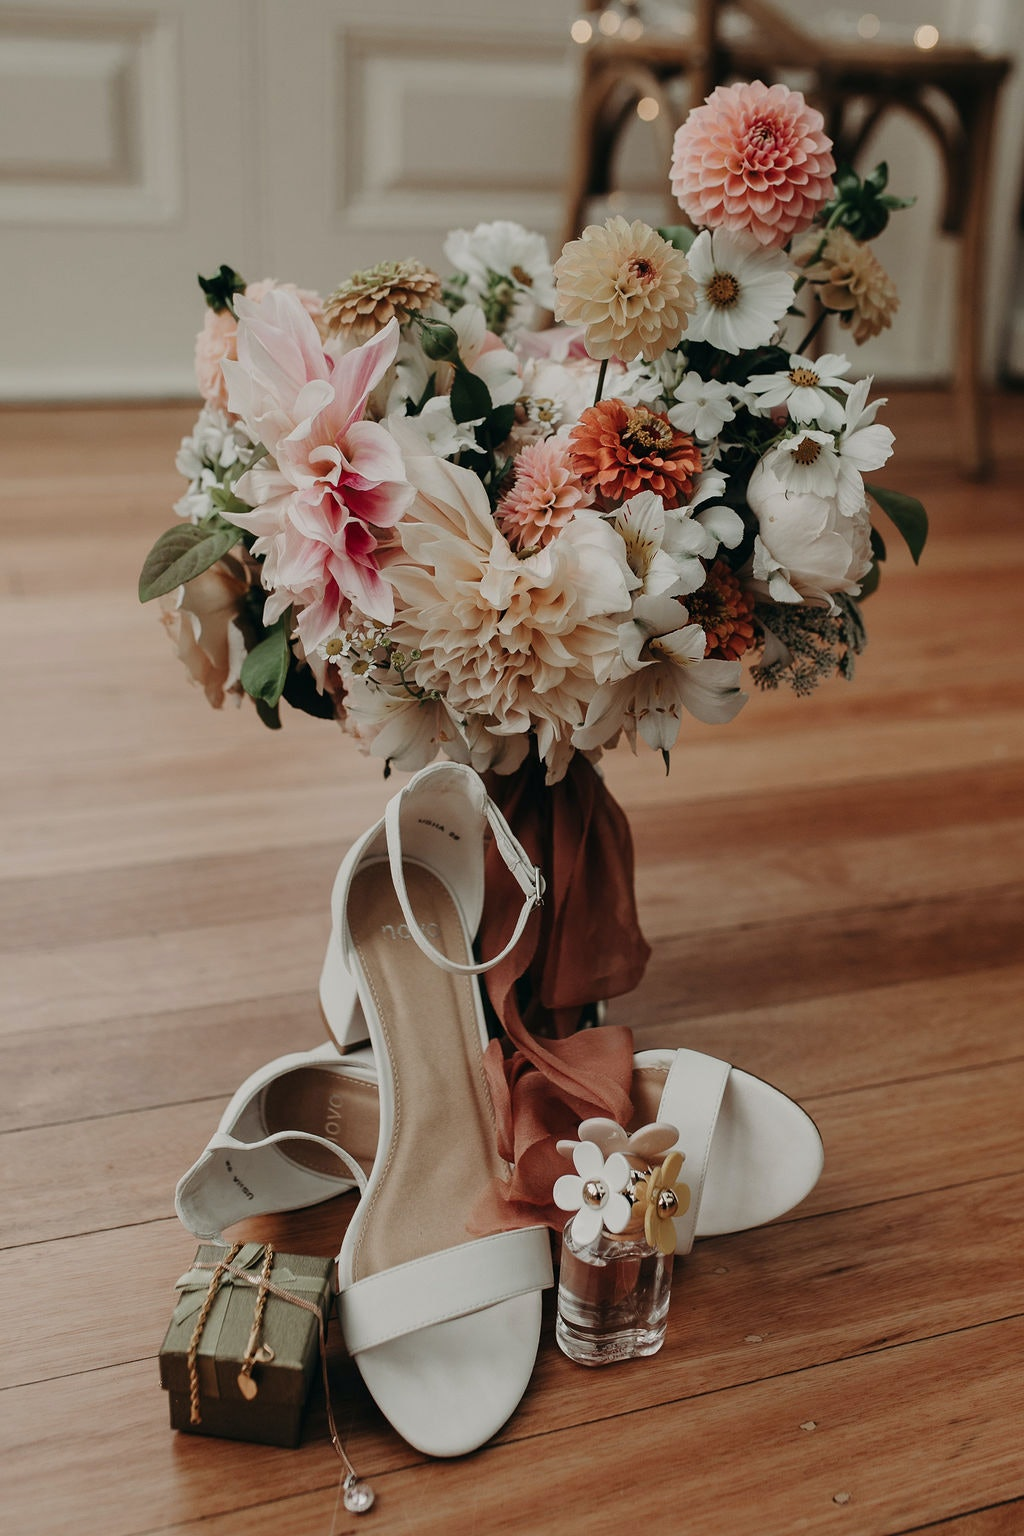 bouquet shot with shoes and perfume